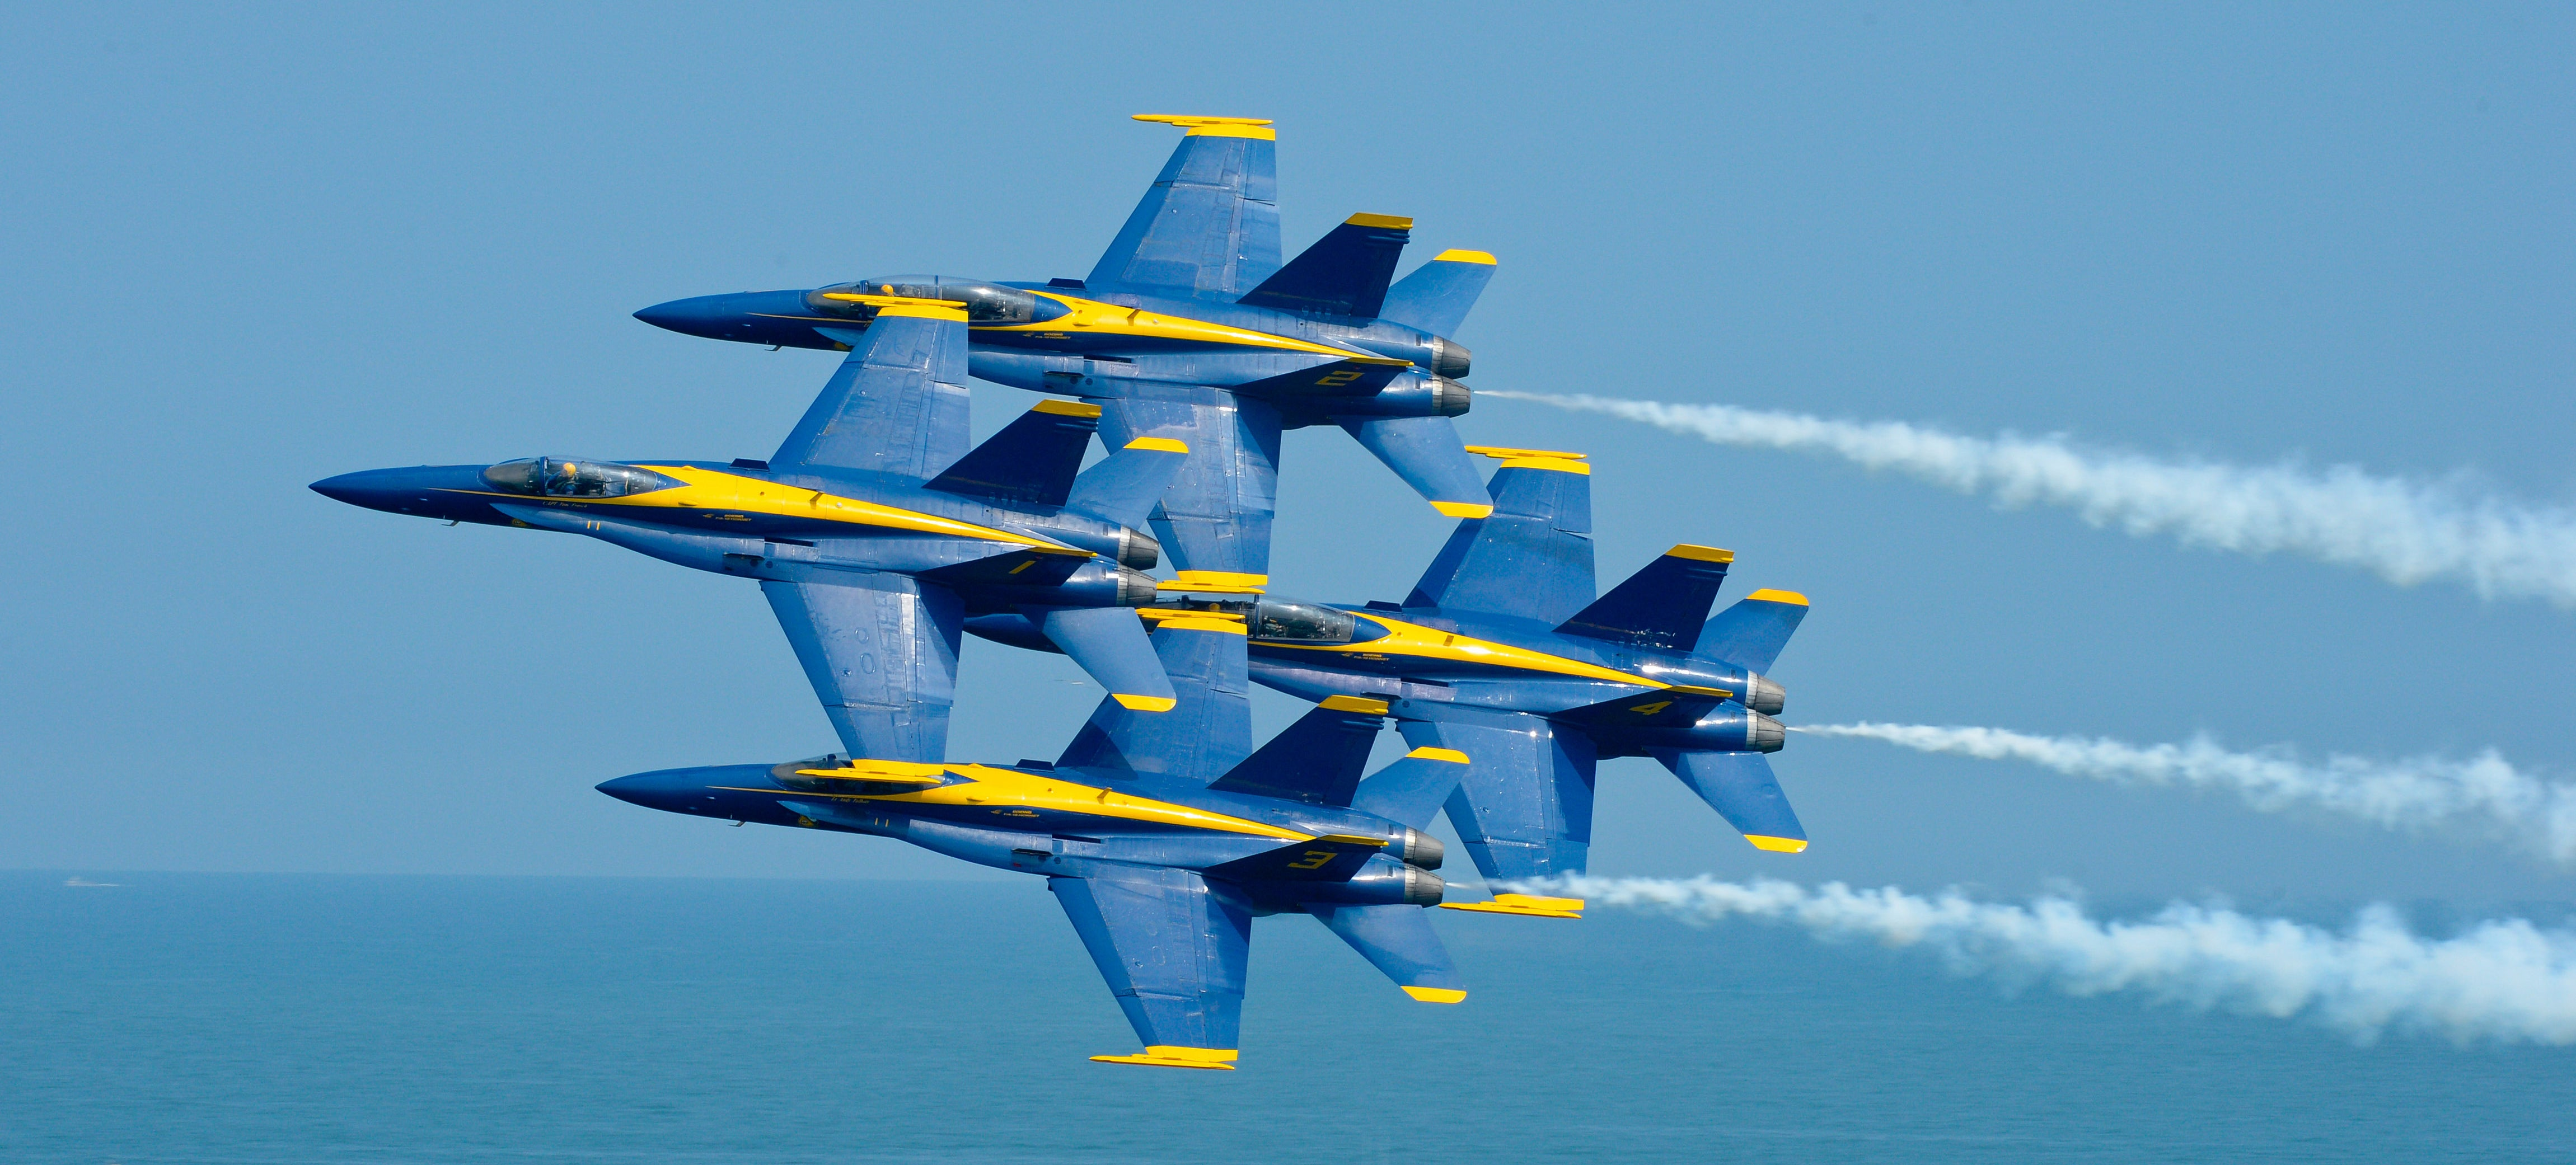 The Blue Angels Look Totally Suicidal in this Photo